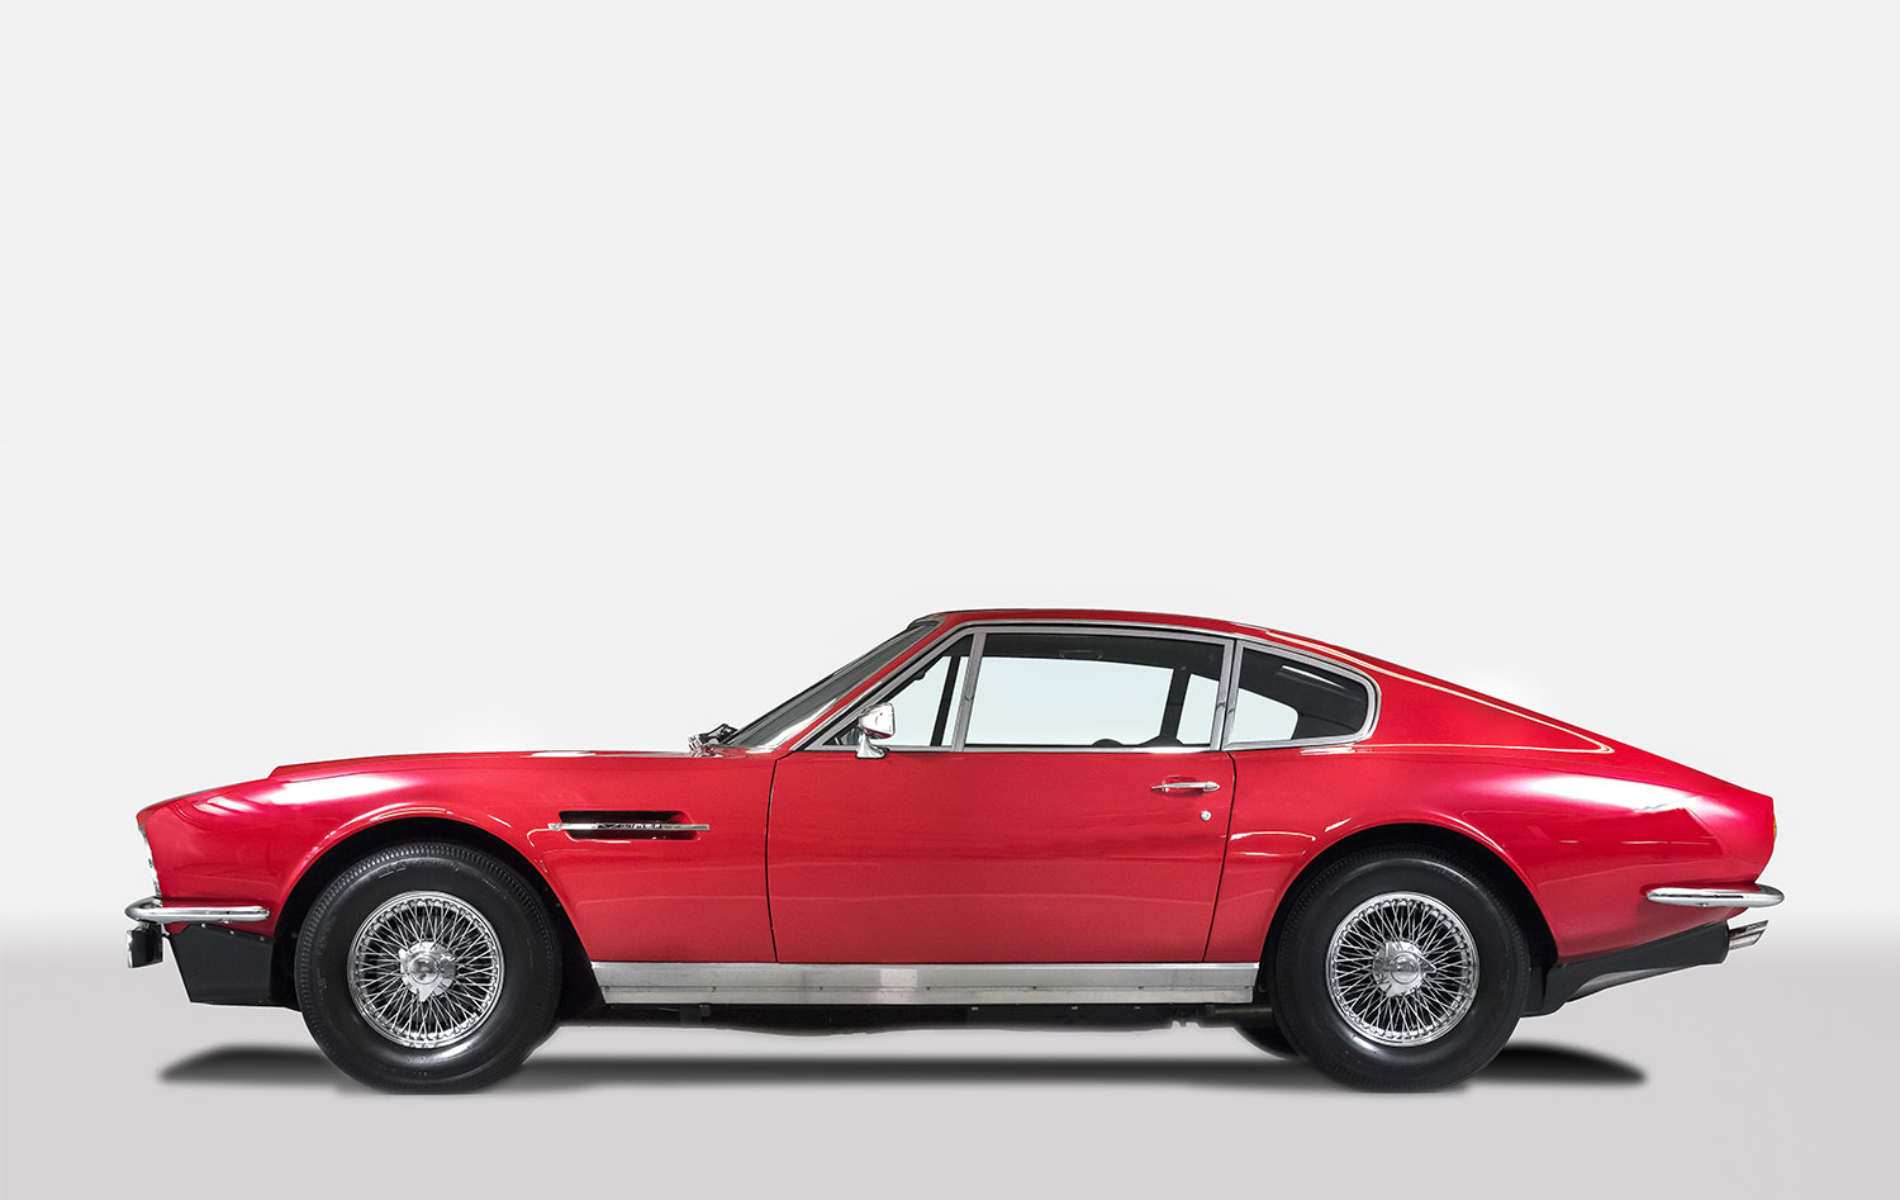 hrb_automotive_aston_martin_1970_dbs_vantage_11